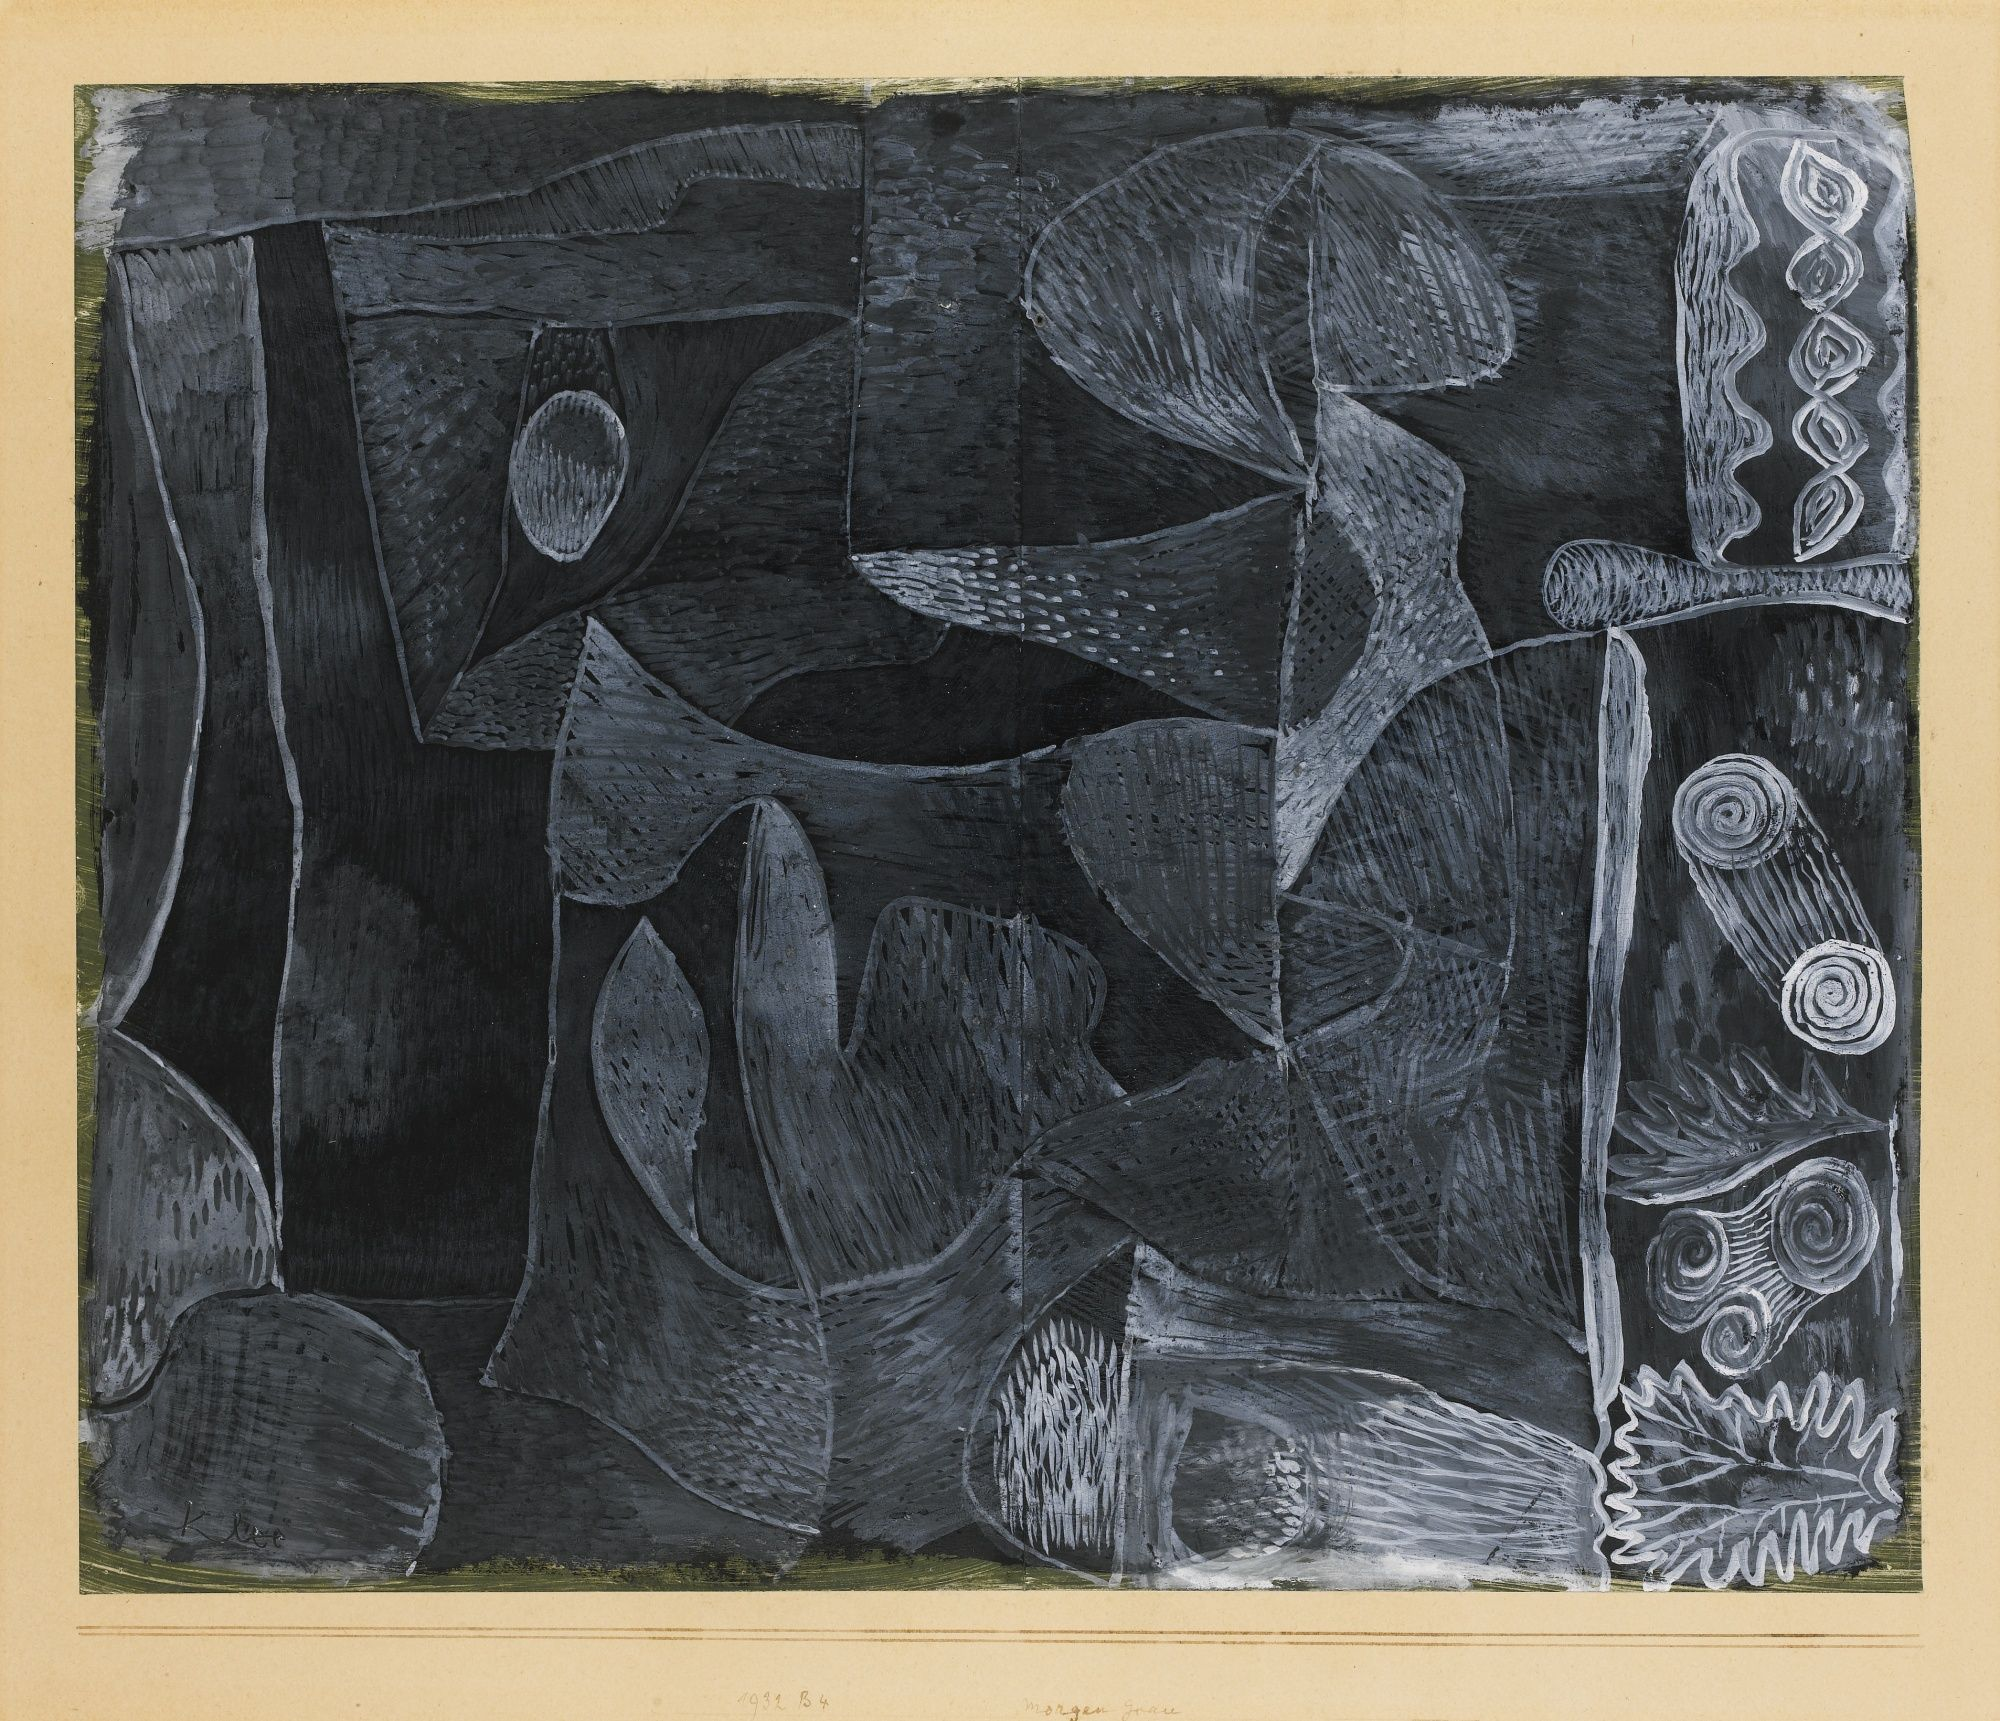 Paul klee morgengrau morning grey signed klee lower